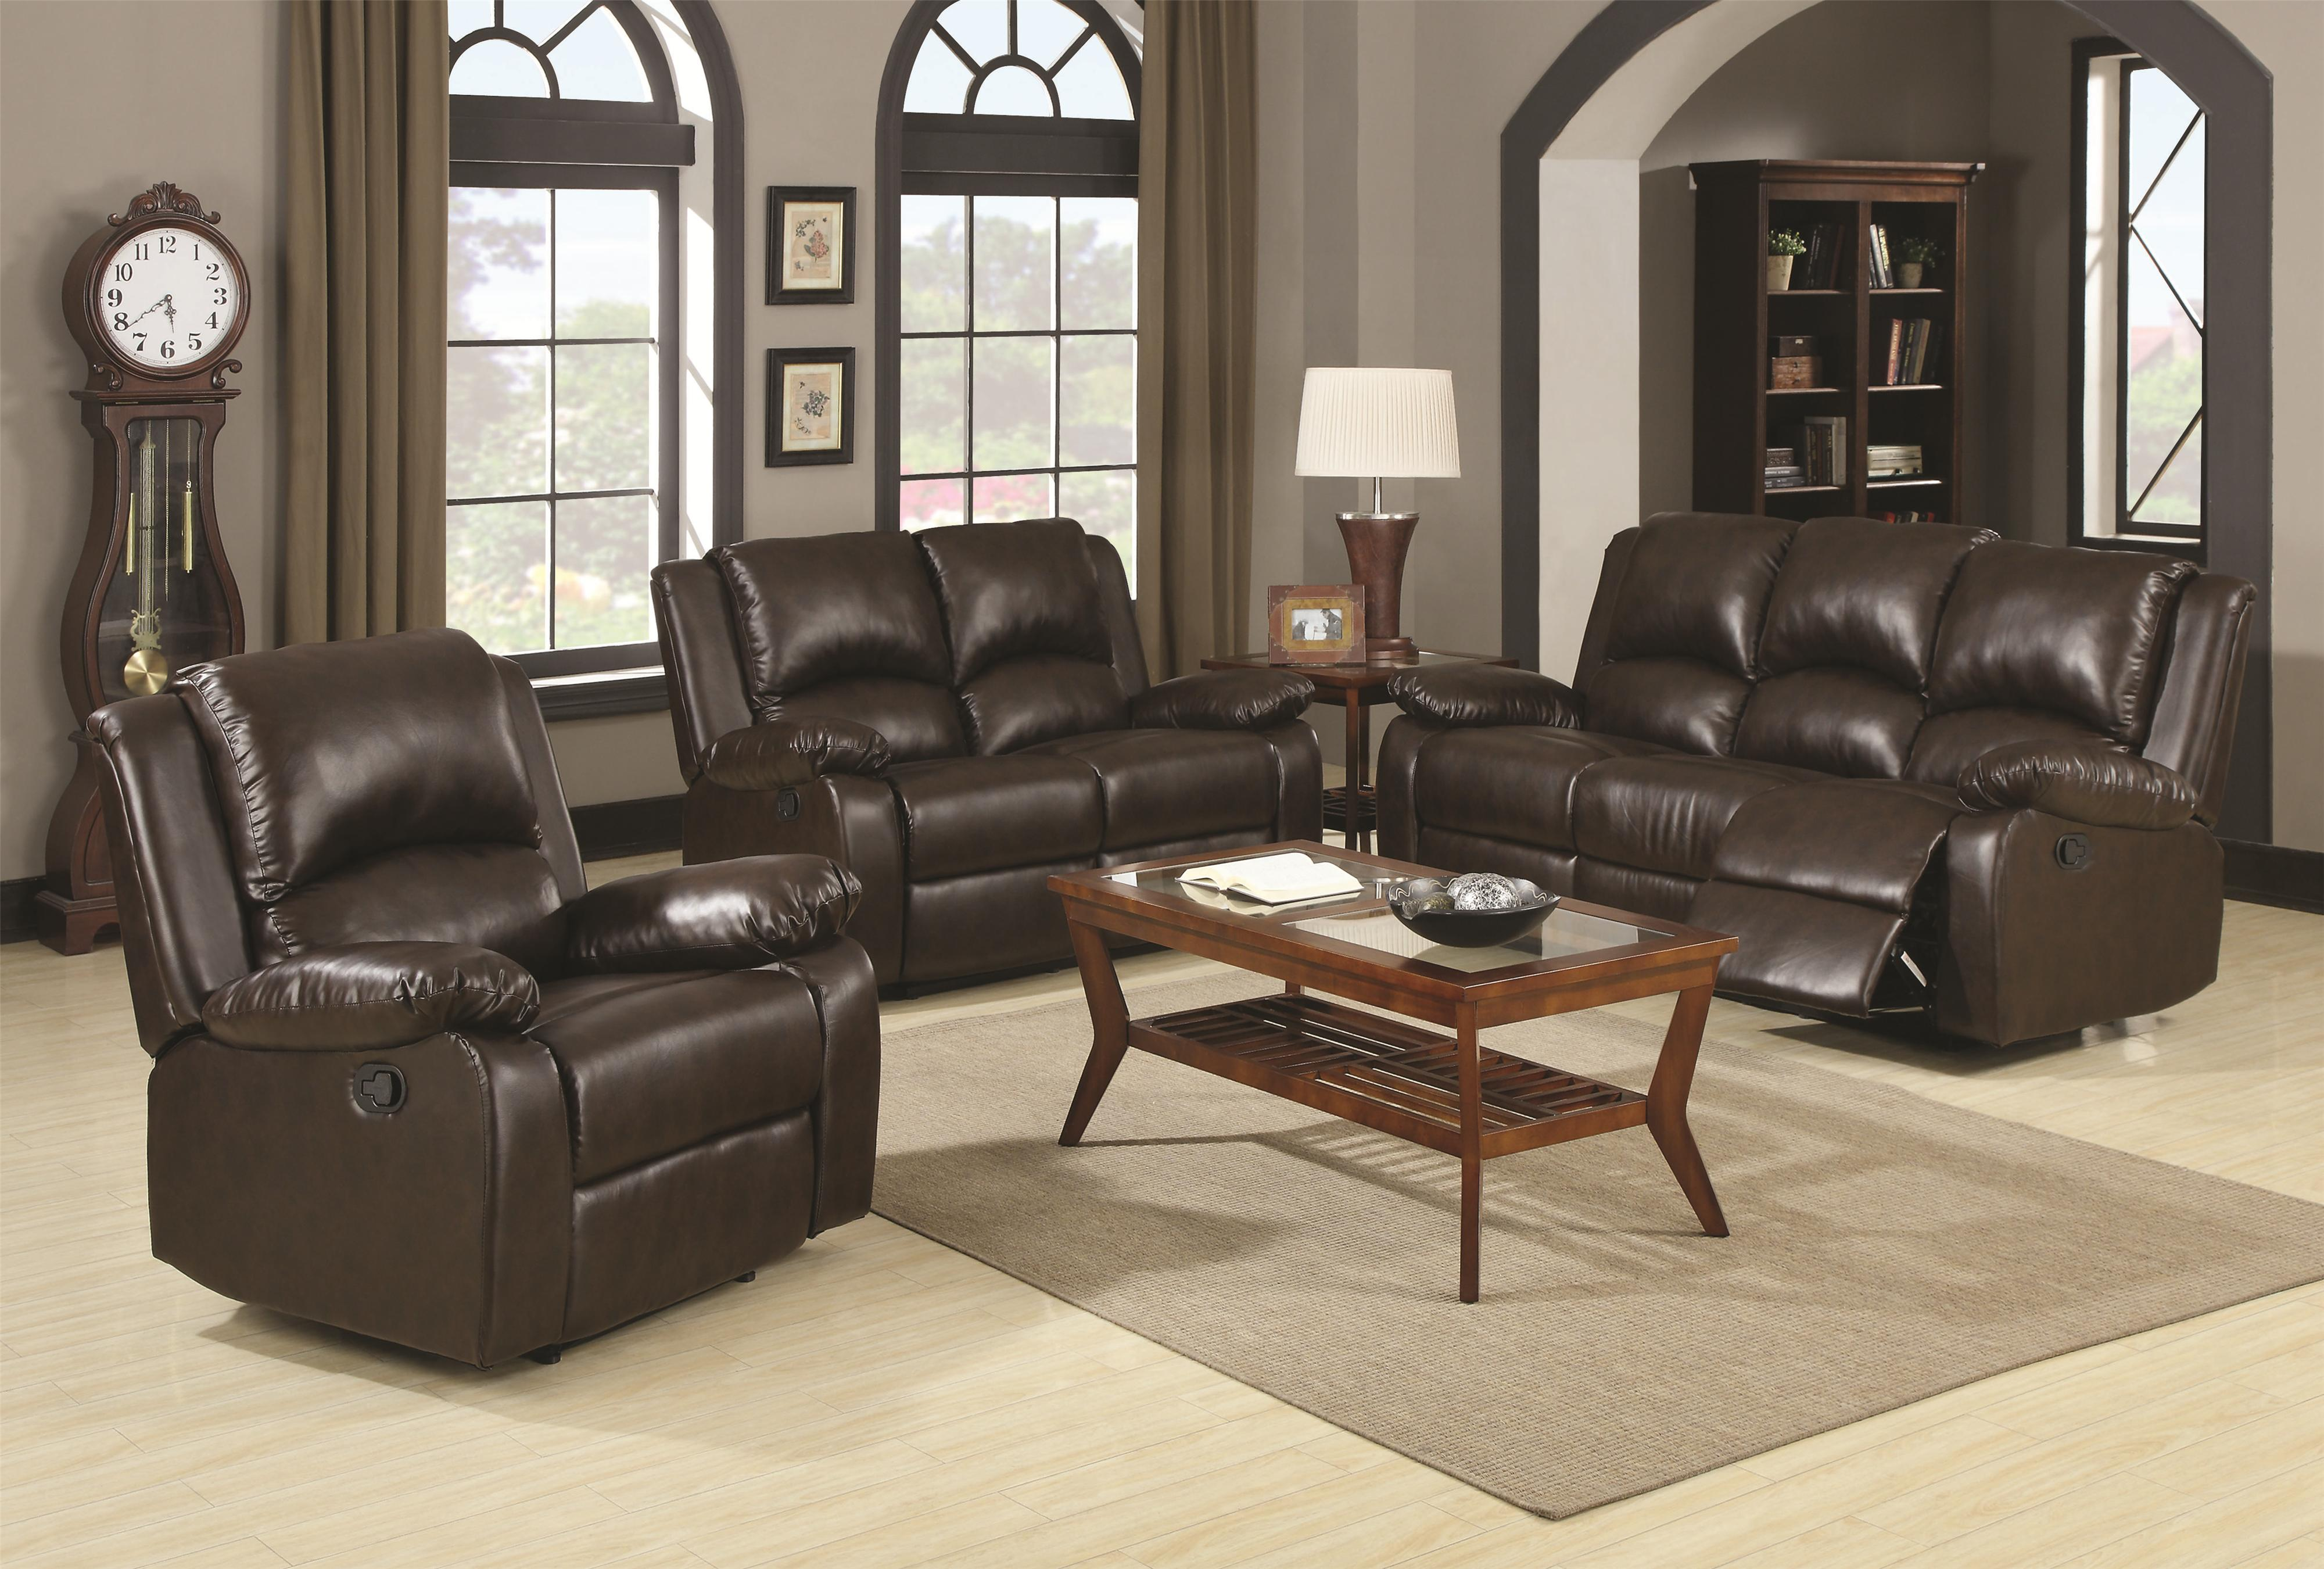 living room furniture in oakley, real leather sofa sets, recliners